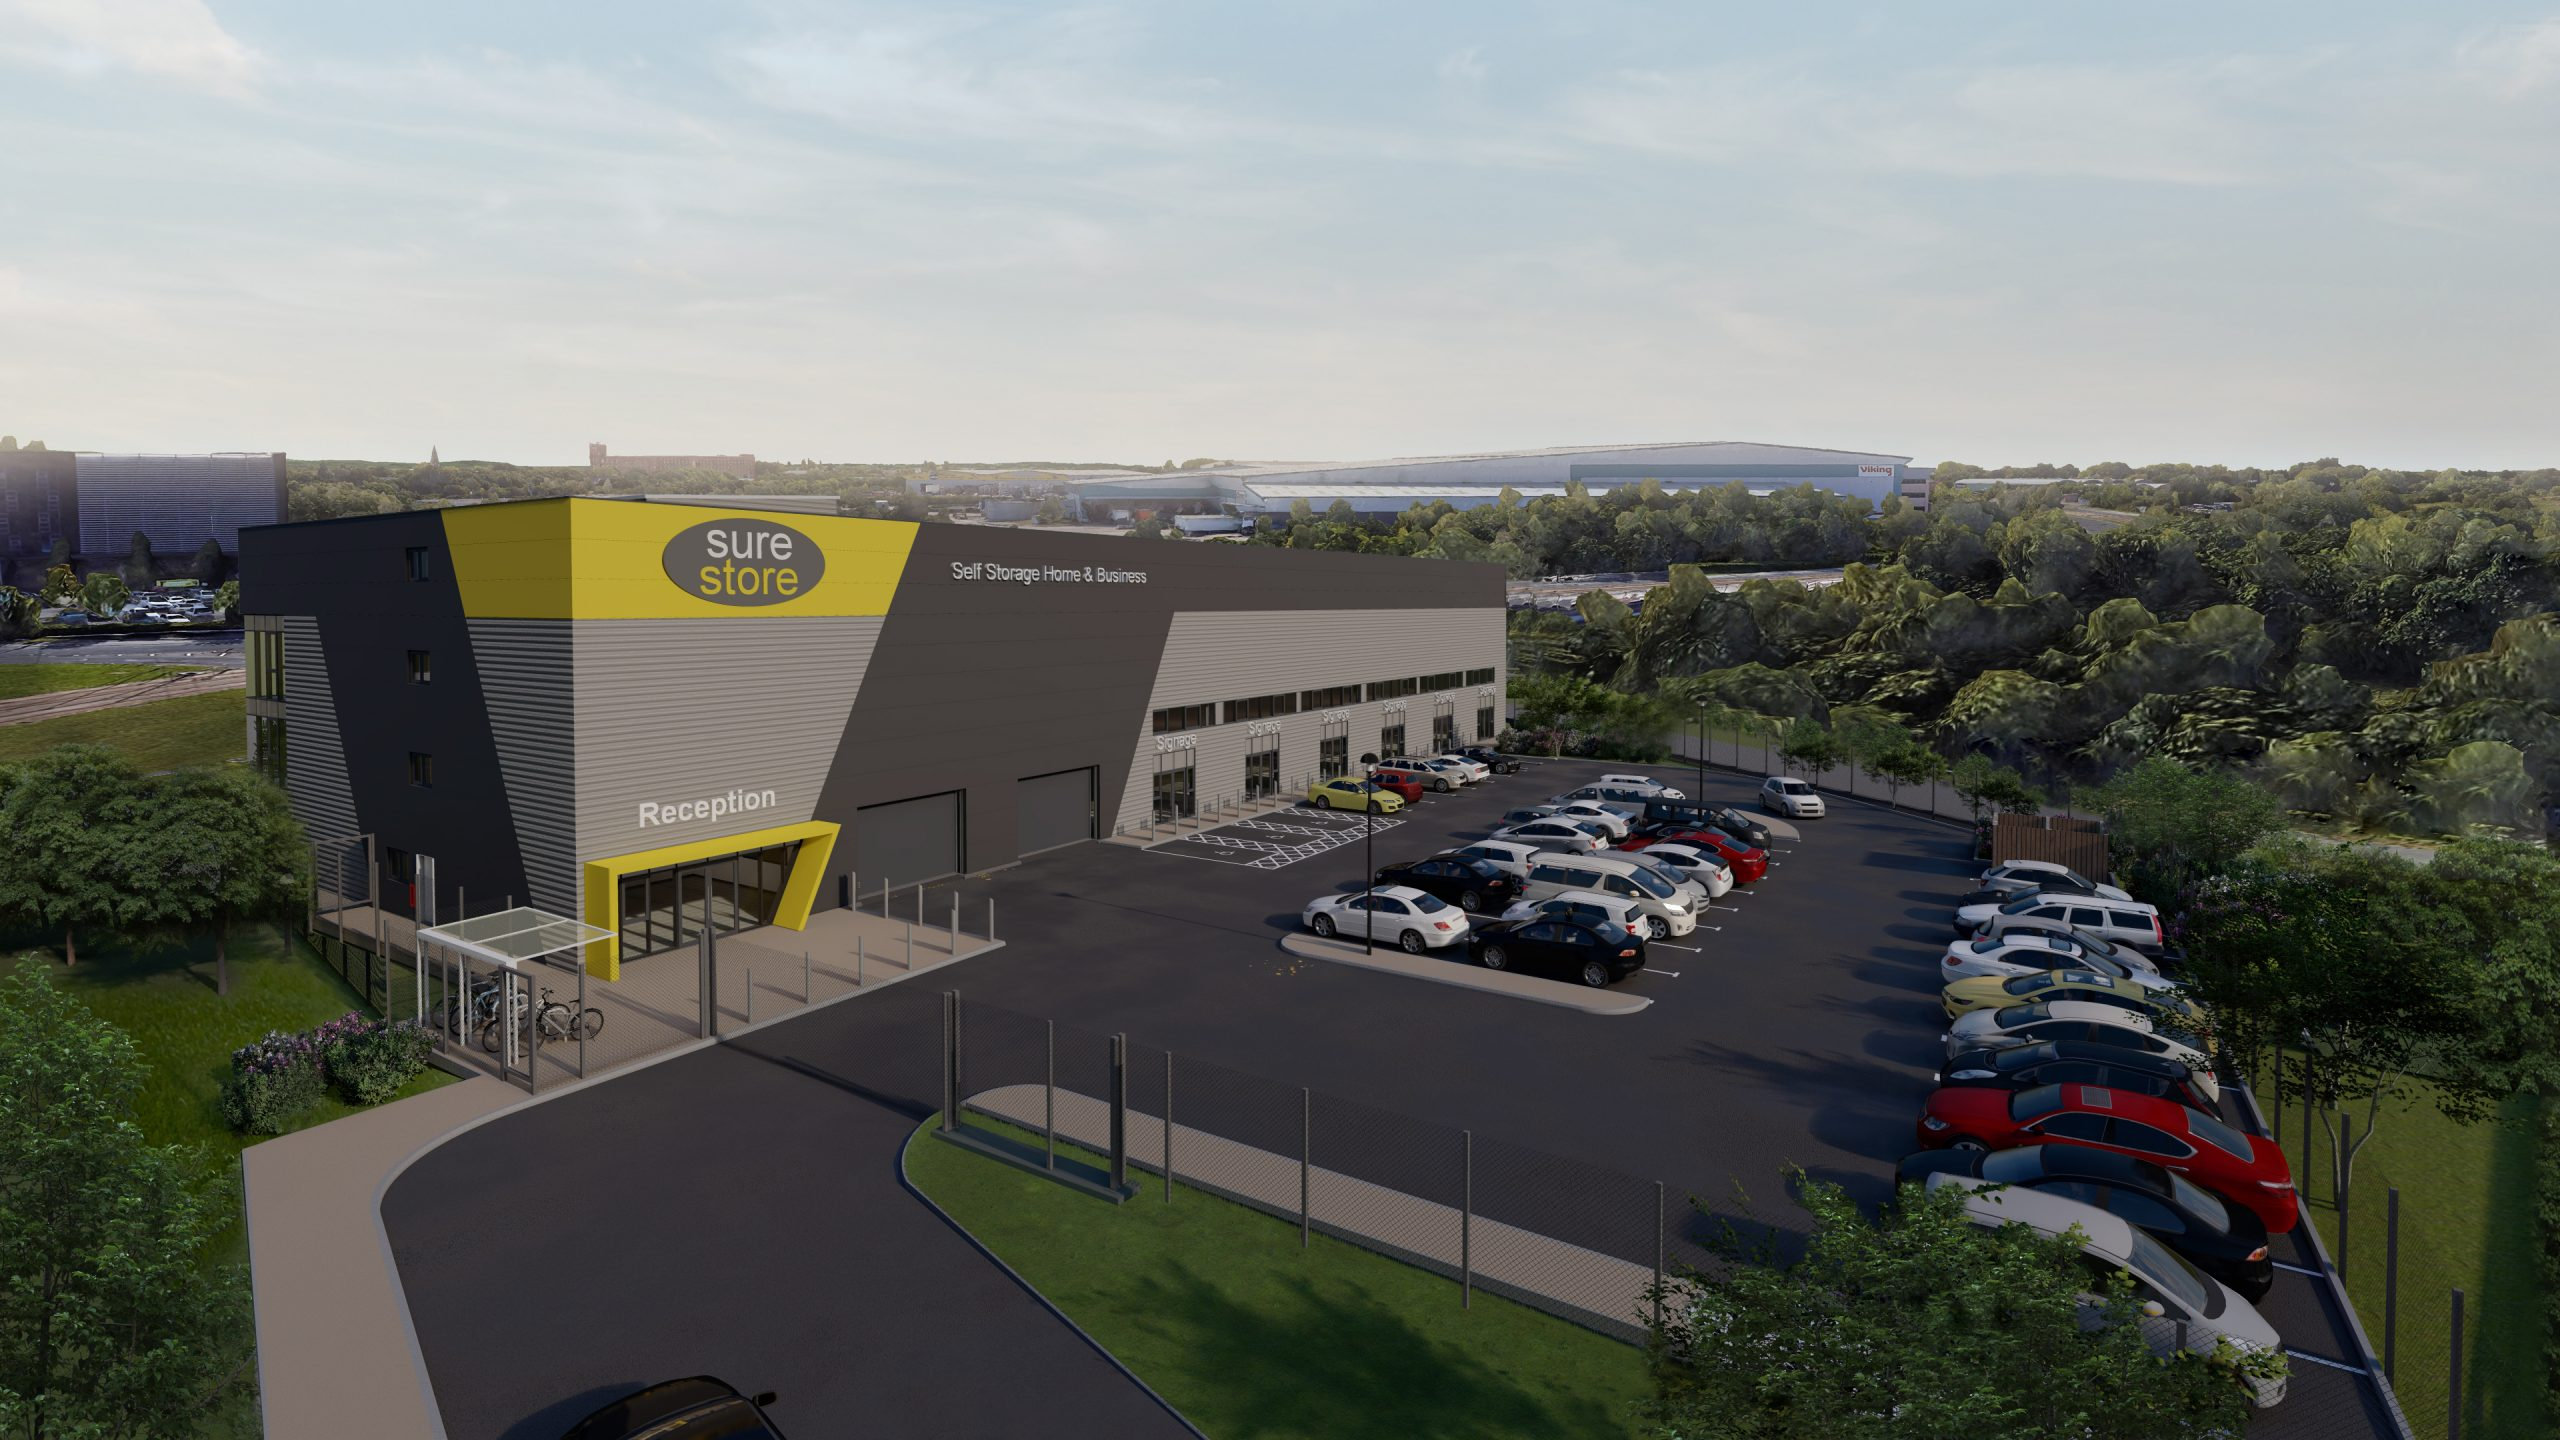 Directions for convenient self-storage in Ashton-under-Lyne